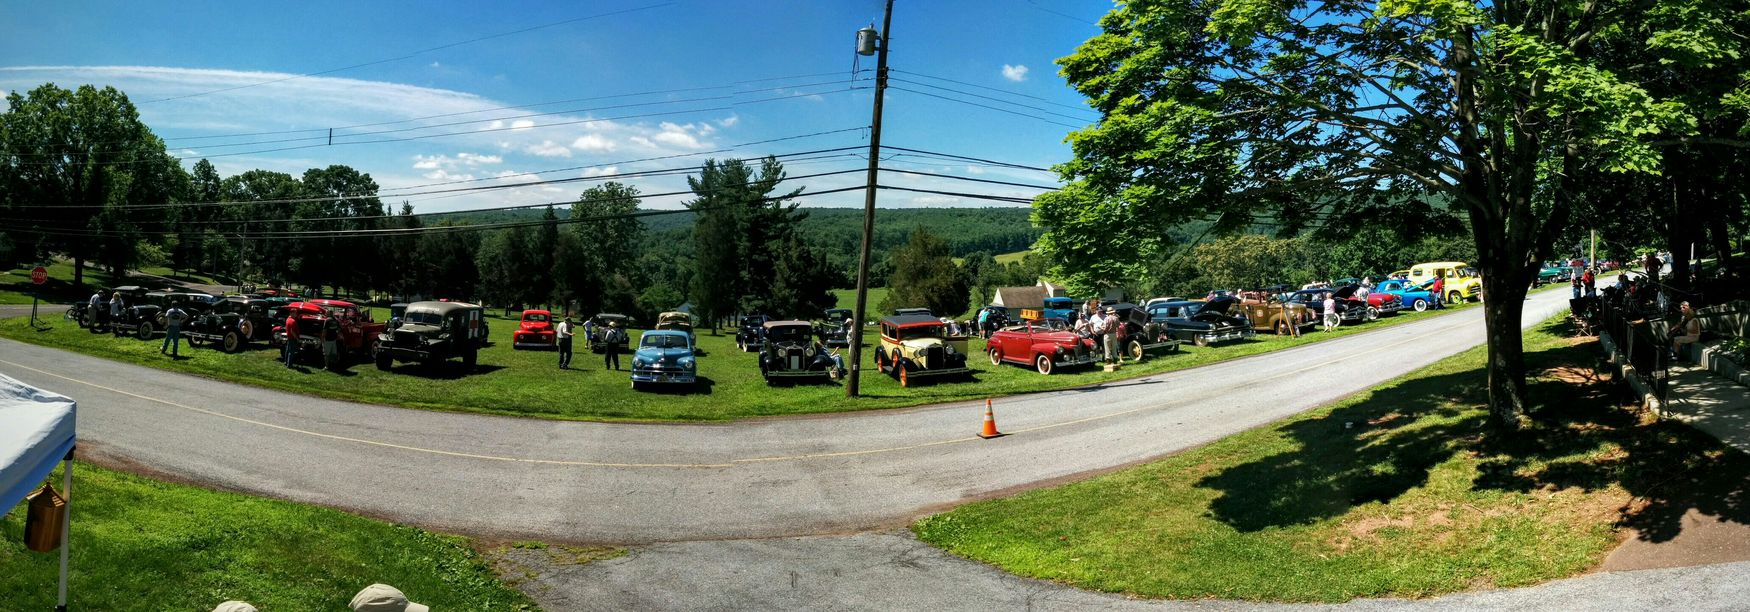 We may be approaching a record. Old Cars Panorama